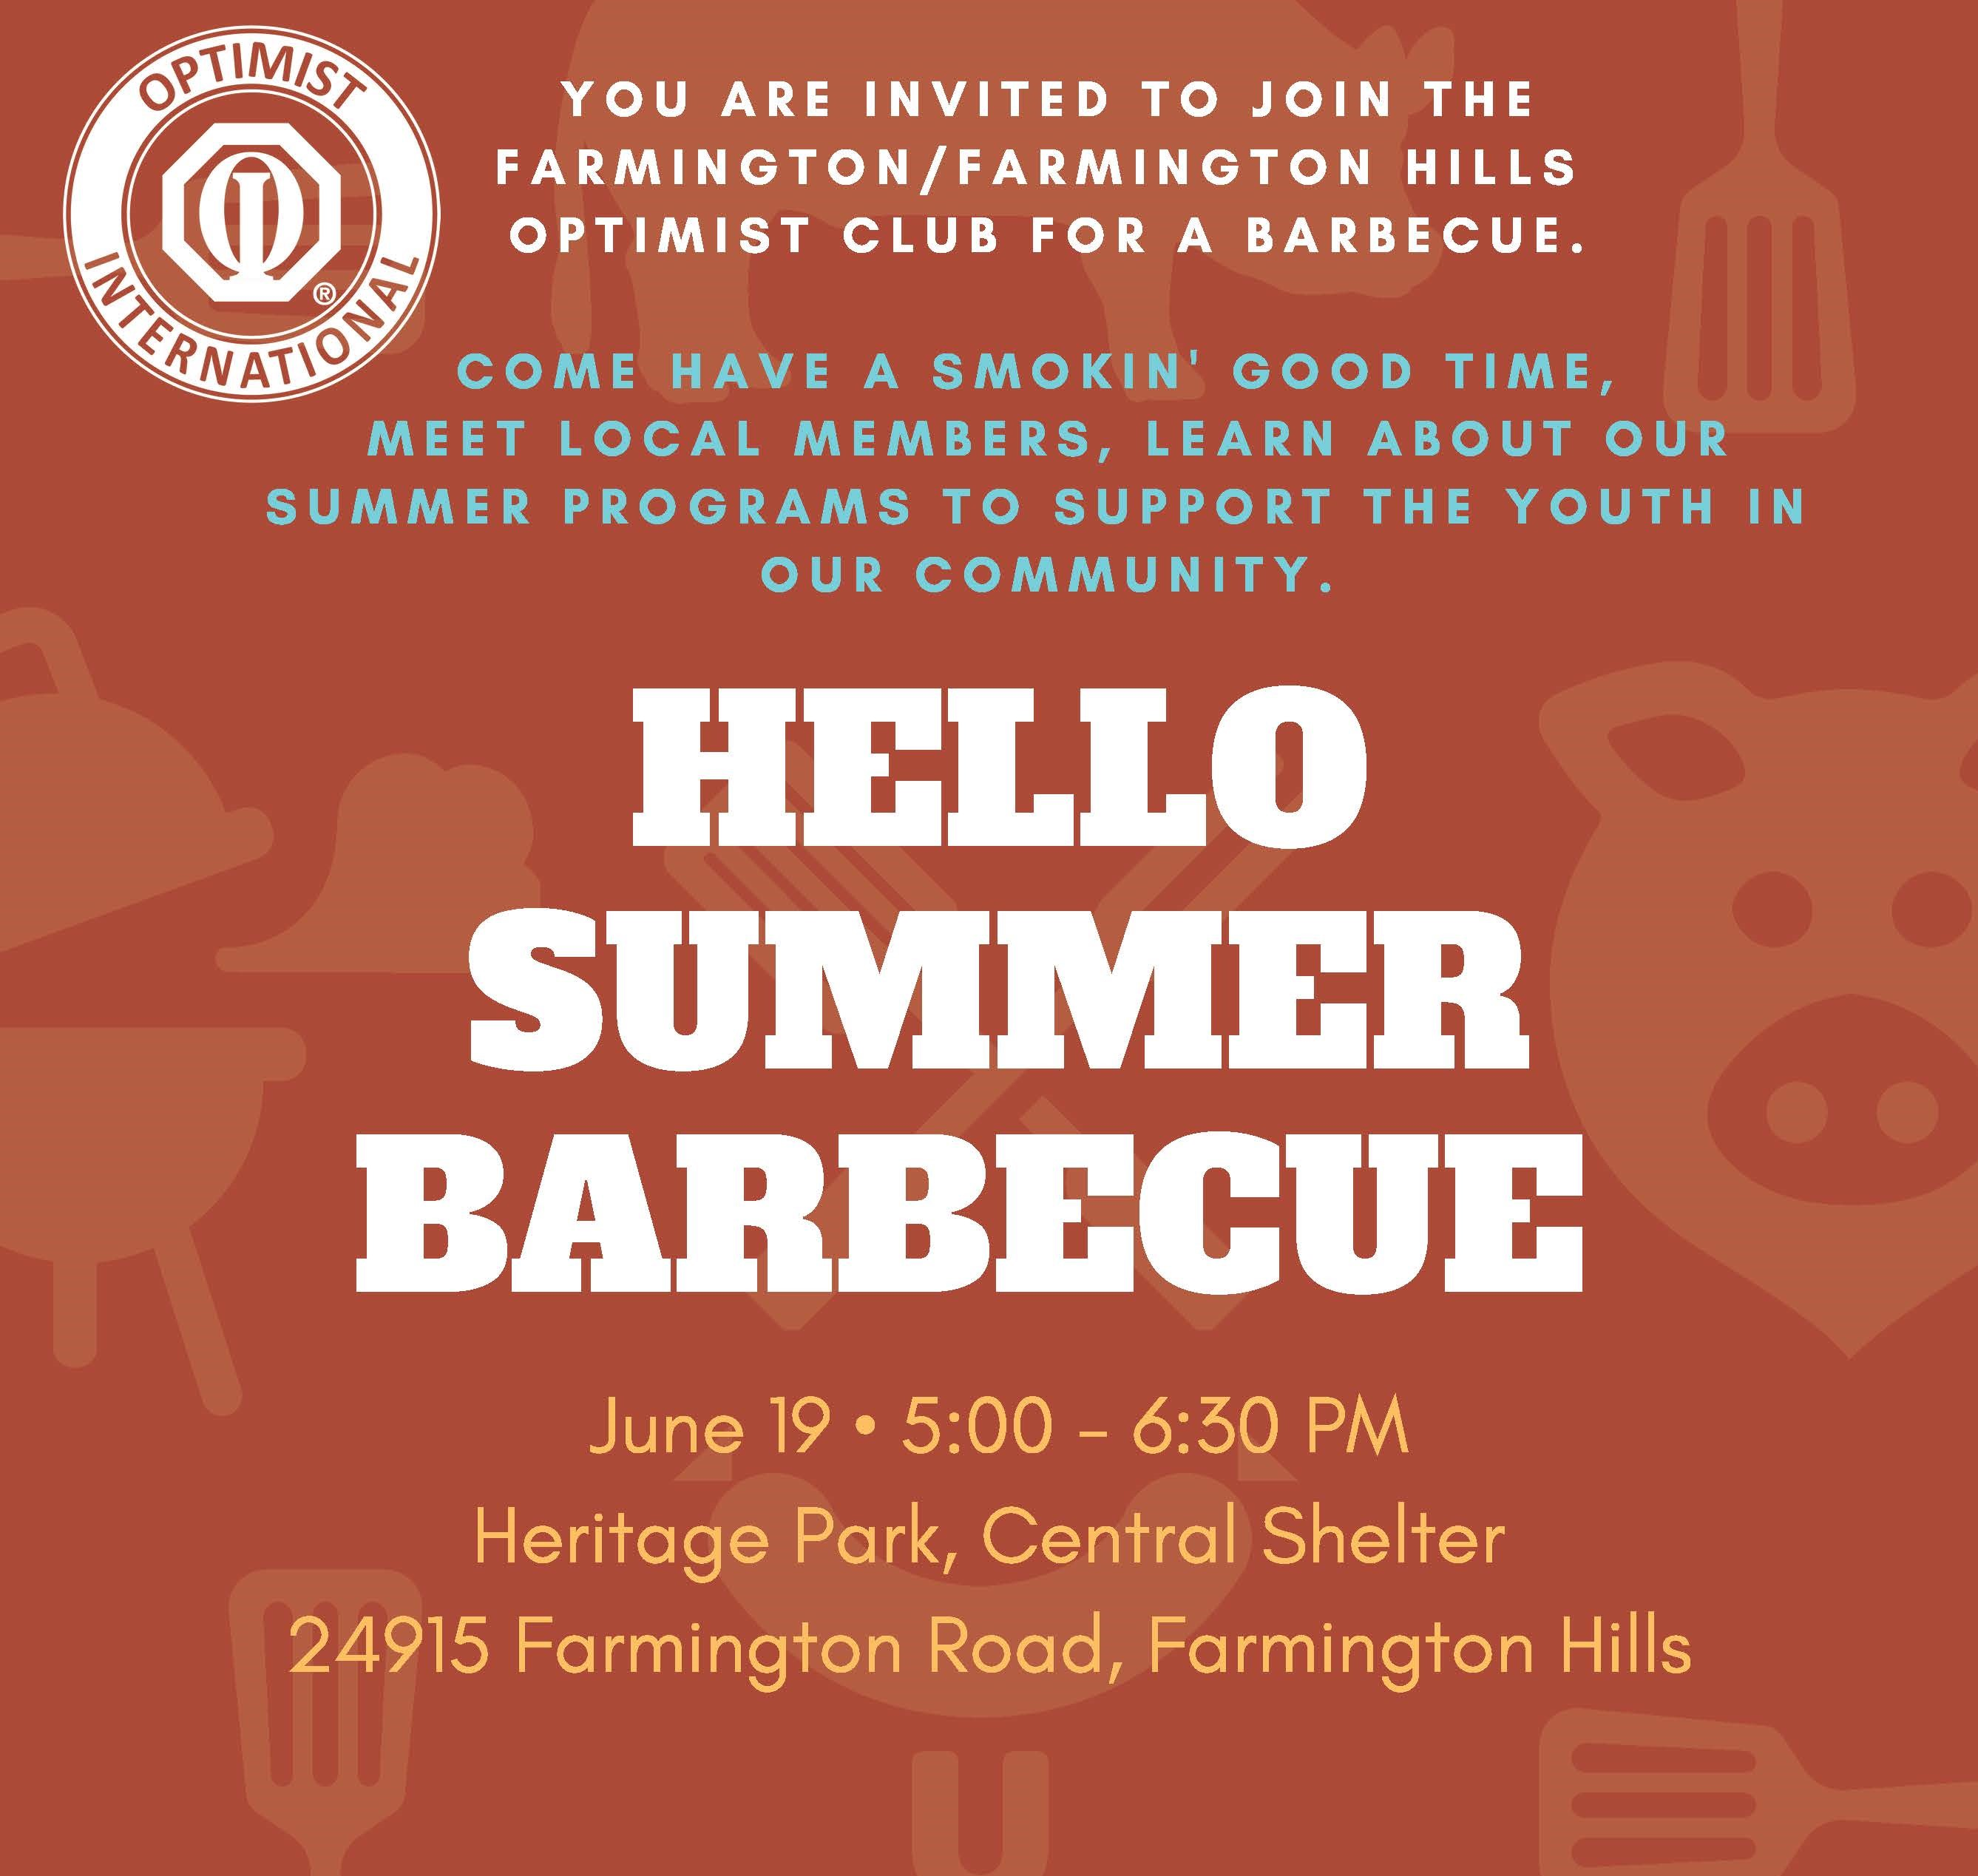 Optimist NOW BBQ June 19 2019